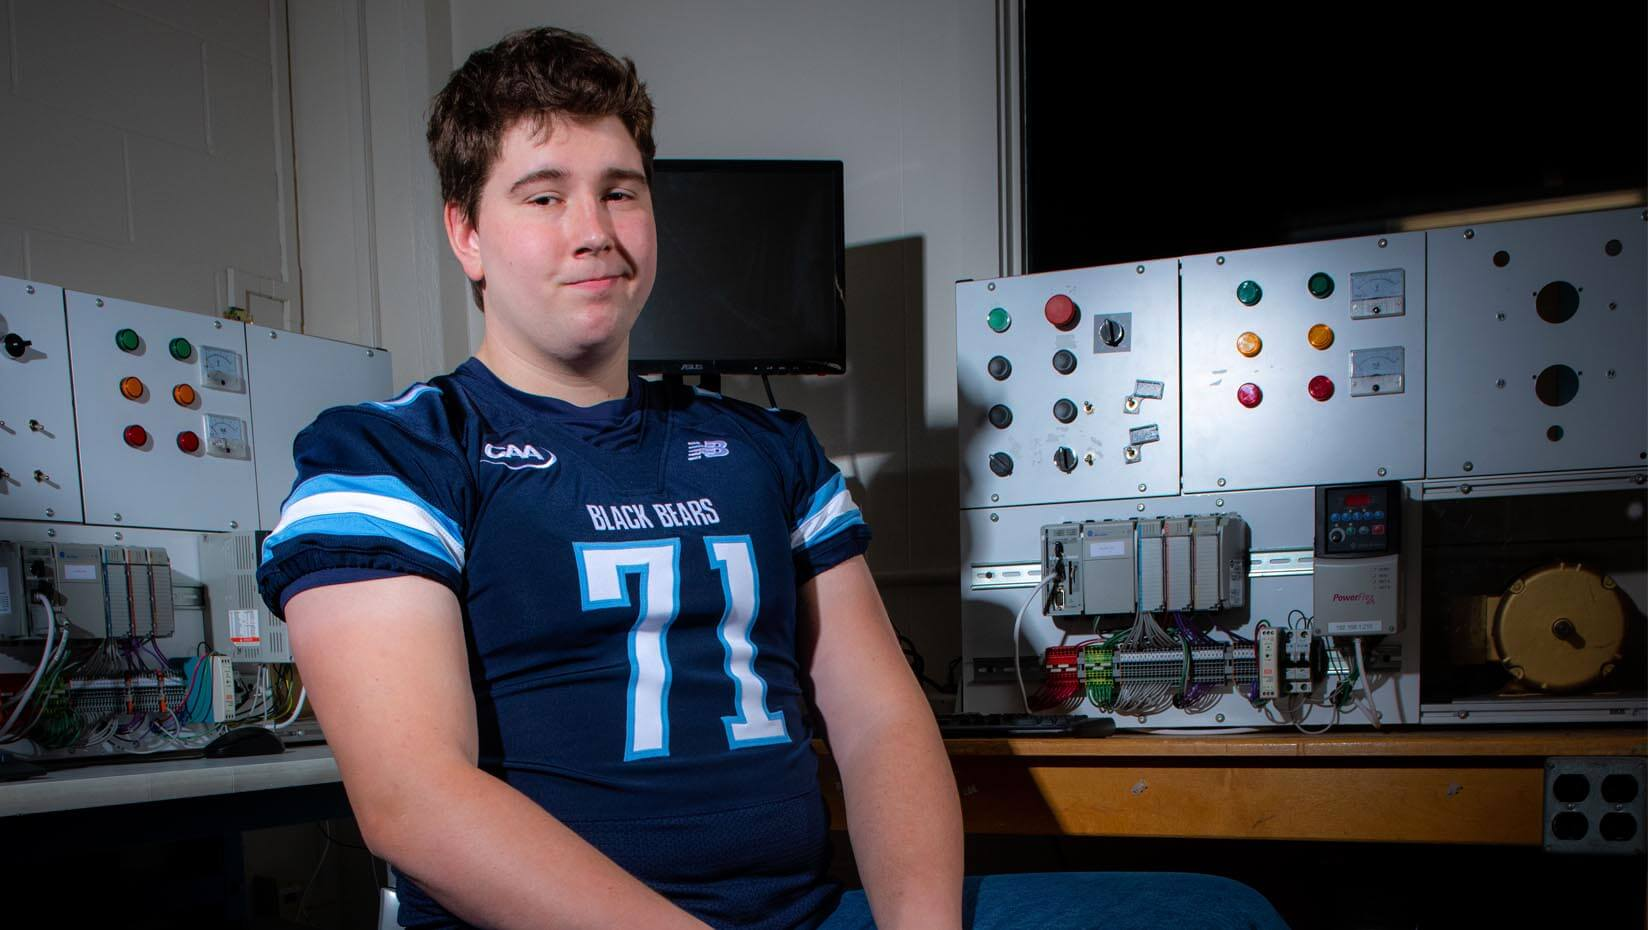 featured image for Gunnar Docos: Diligence, perseverance in the lab and on the field